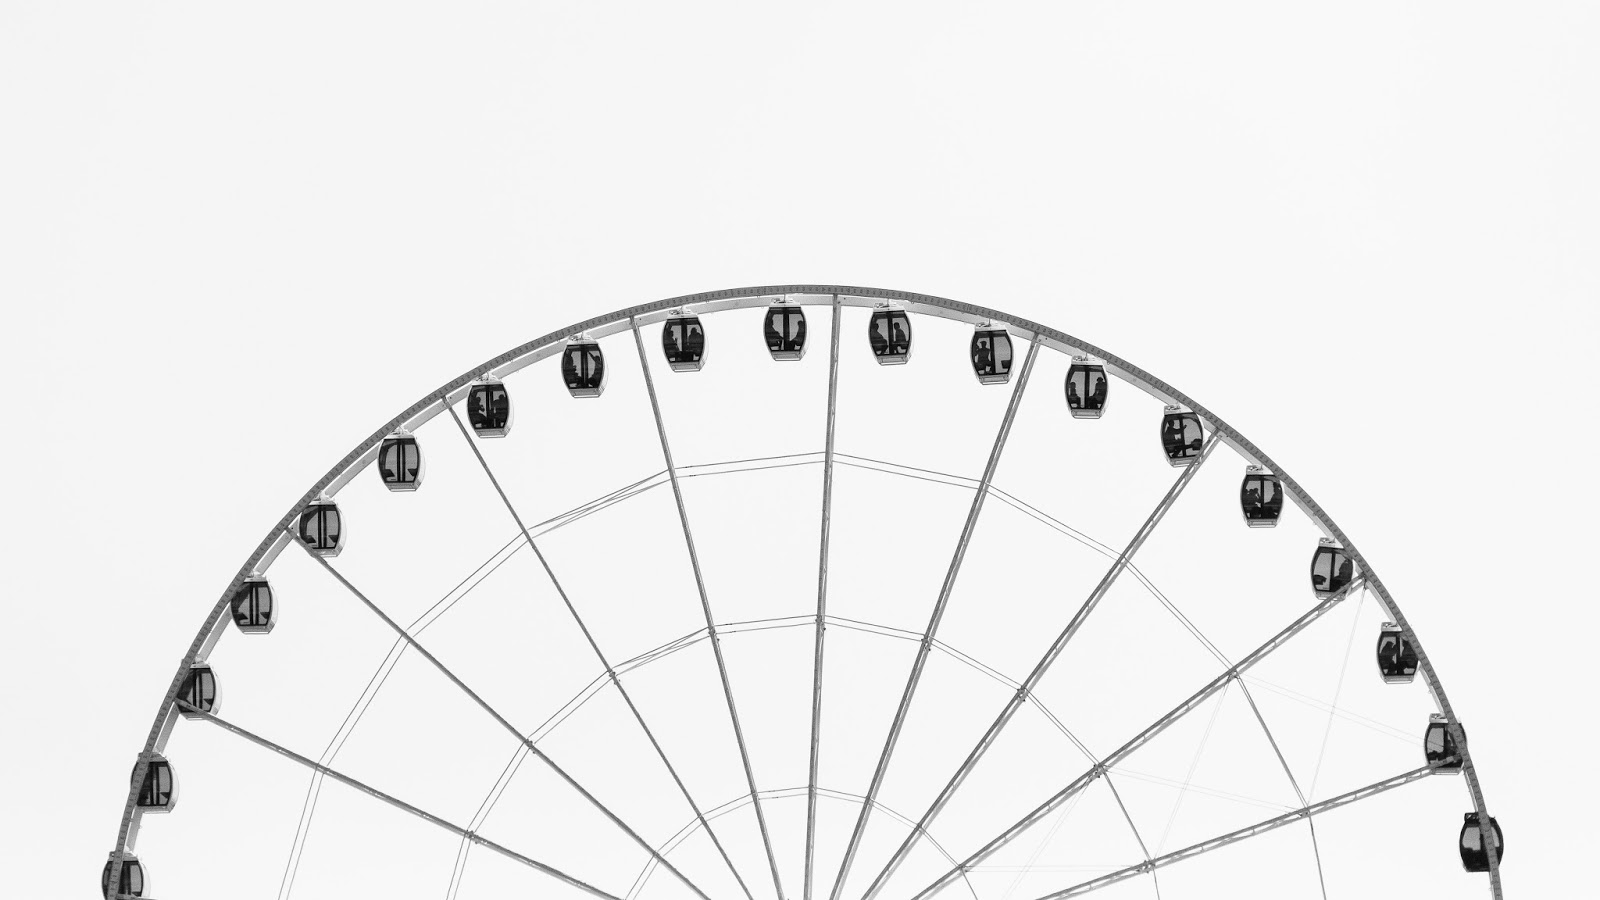 Ferris wheel descriptive essay